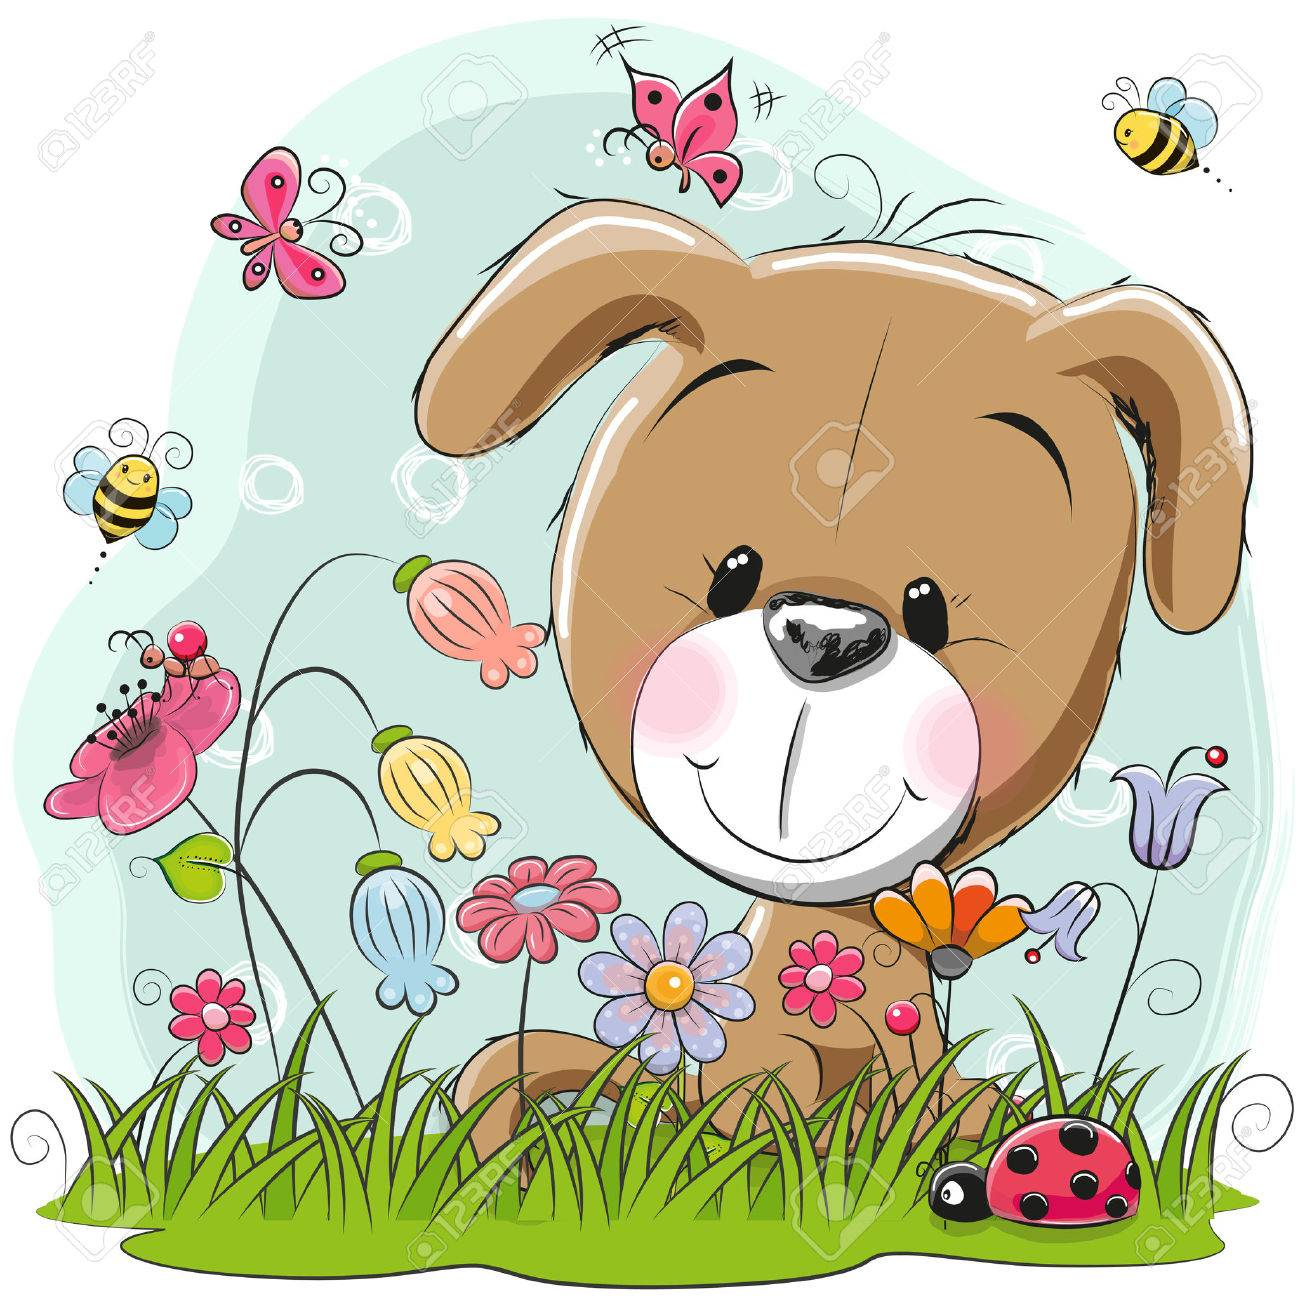 Beautiful flowers 2019 puppy with flowers beautiful flowers puppy with flowers various pictures of the most beautiful flowers can be found here find and download the prettiest flowers ornamental plants izmirmasajfo